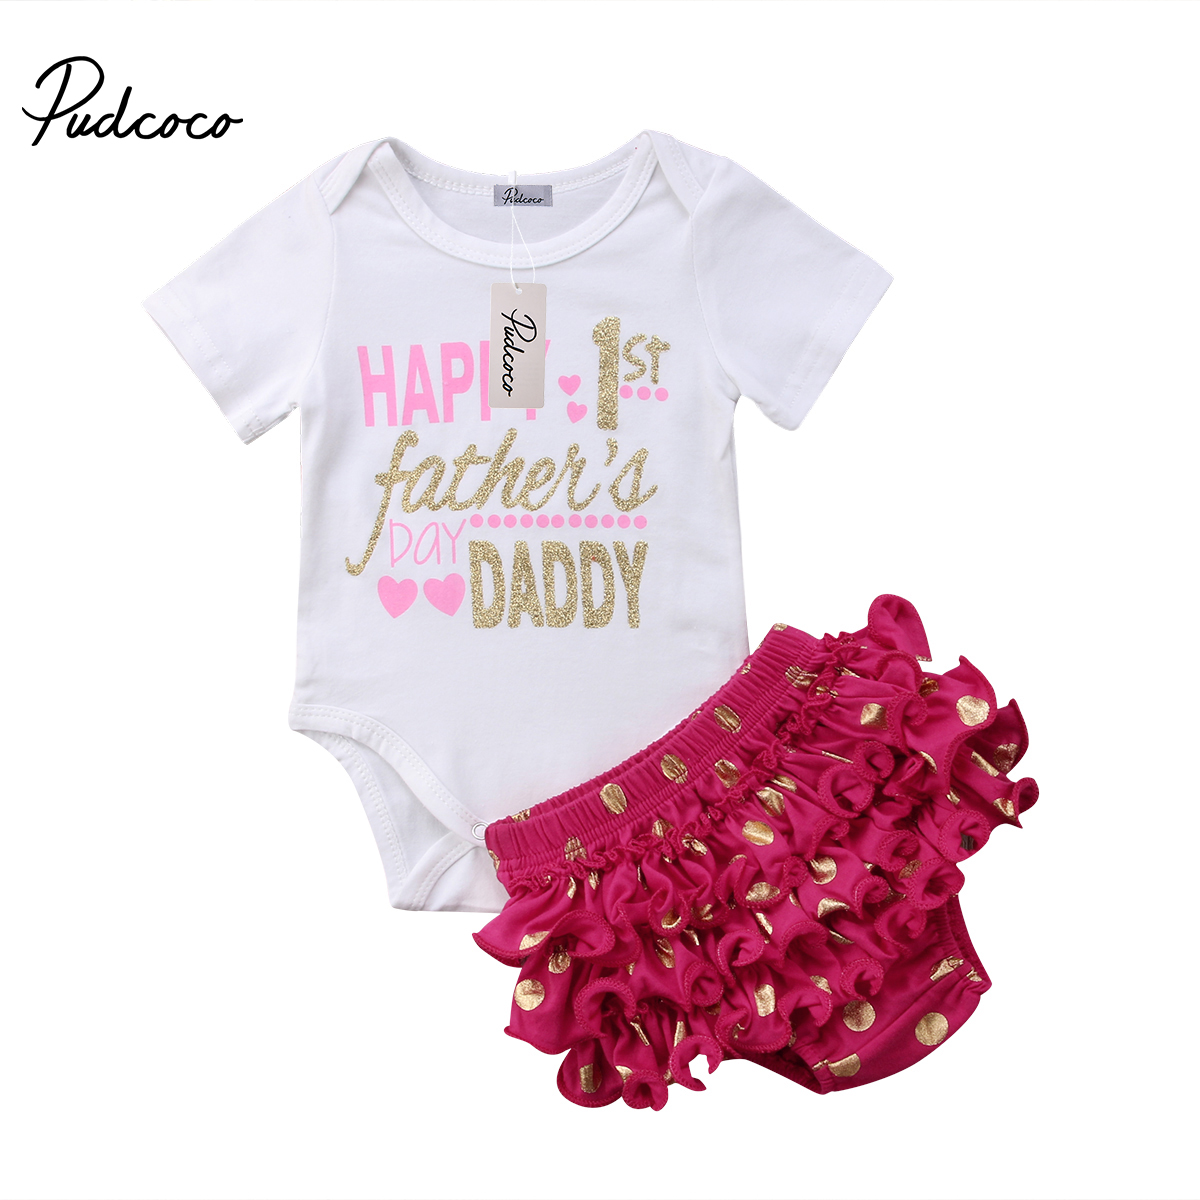 3764233c2e21 top 10 children 2527s girls polka dot ideas and get free shipping ...